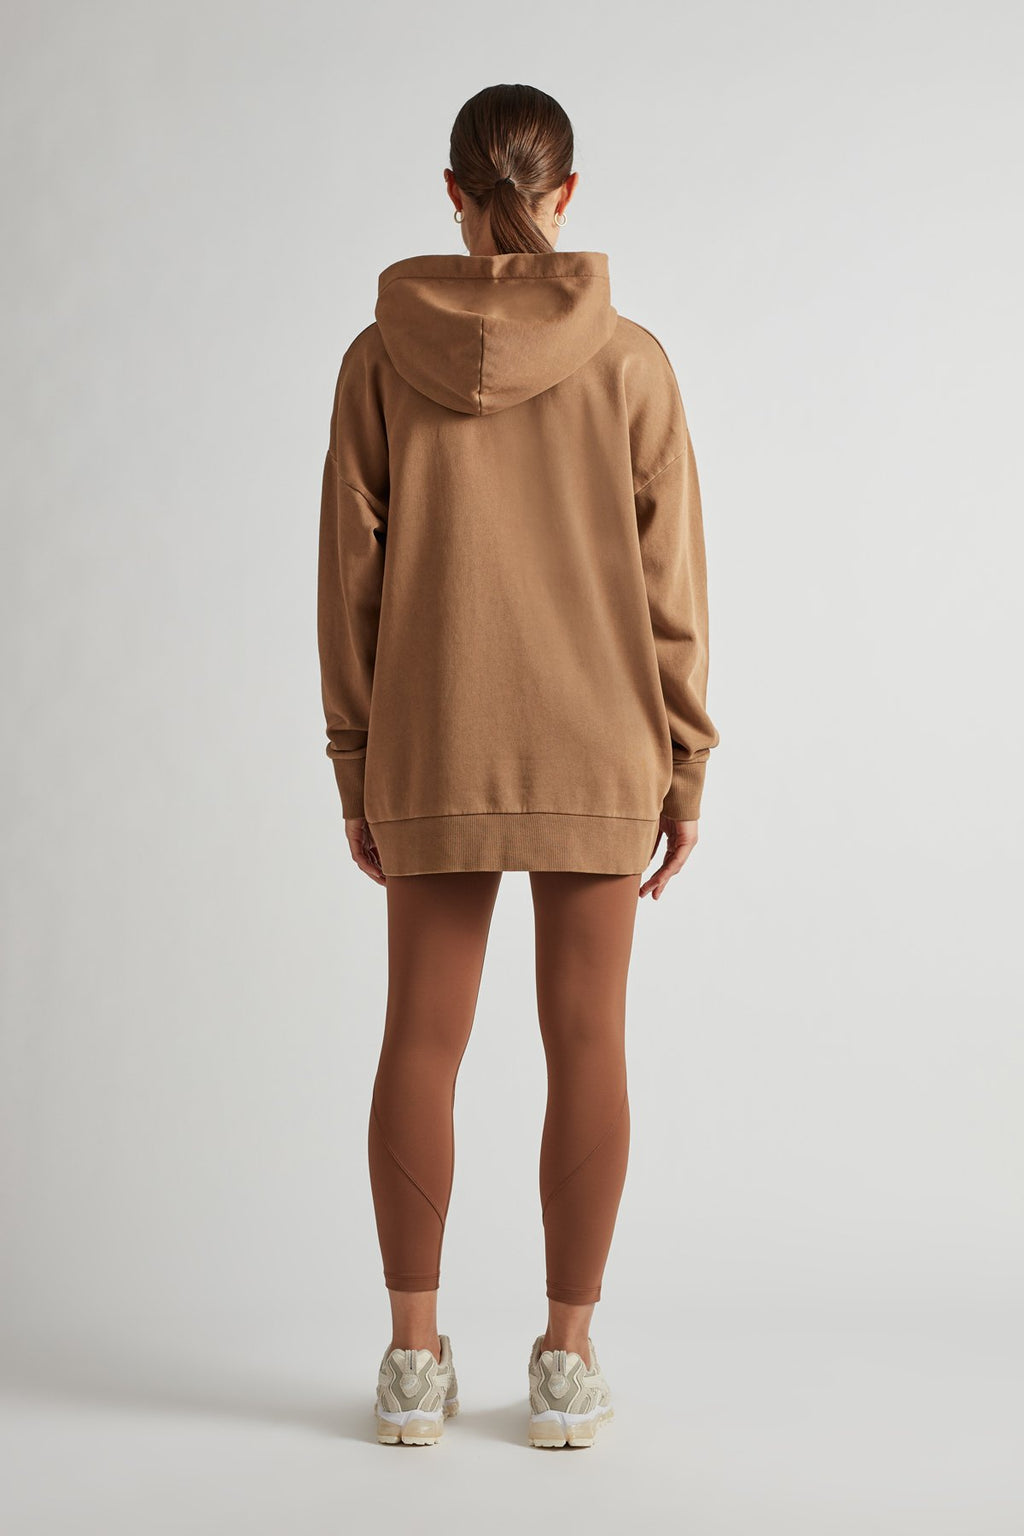 Camilla And Marc / Turner Oversized Hoodie / Rust